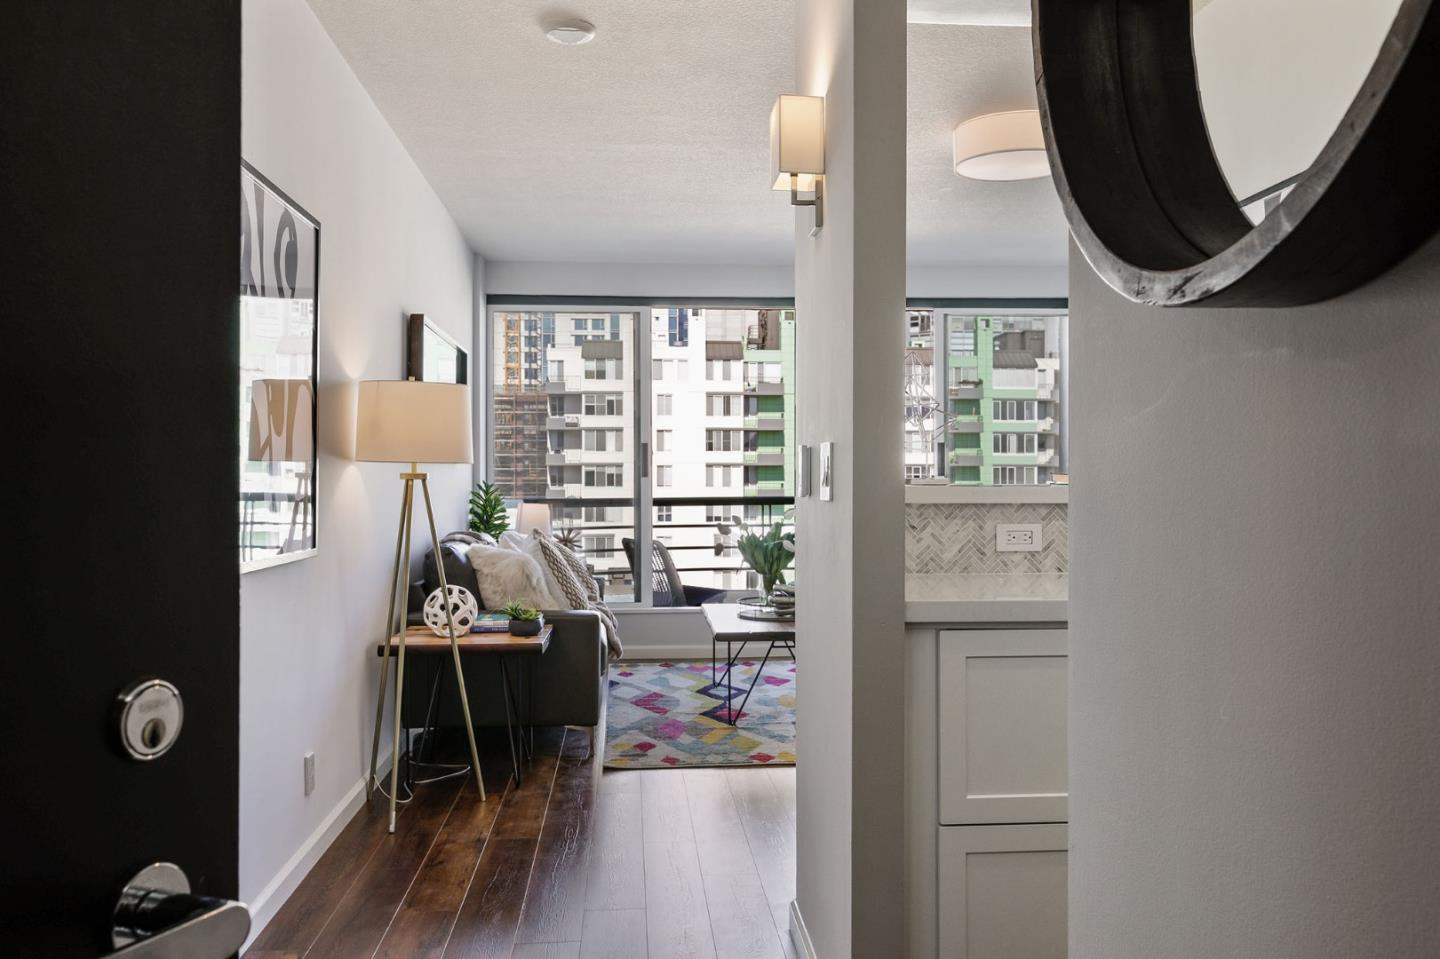 Image for 300 3Rd Street 905, <br>San Francisco 94107